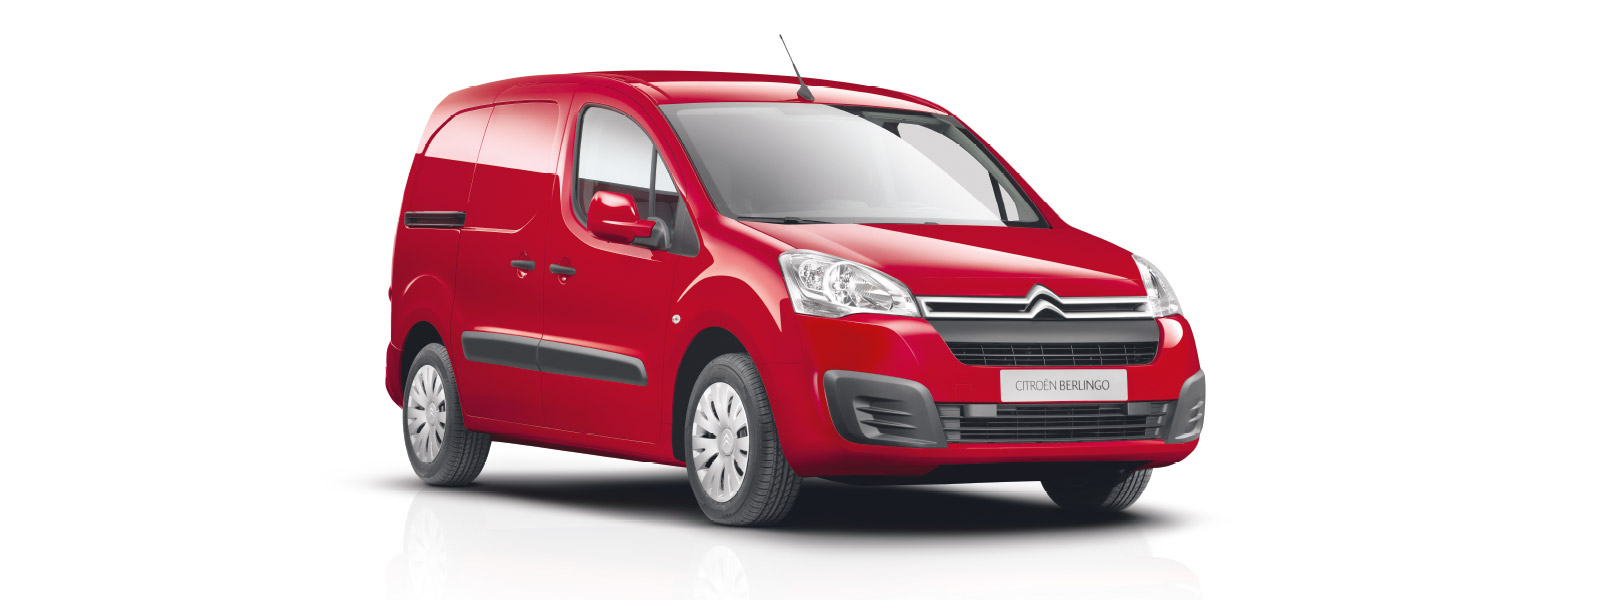 luetke_header_citroen_berlingo.jpg